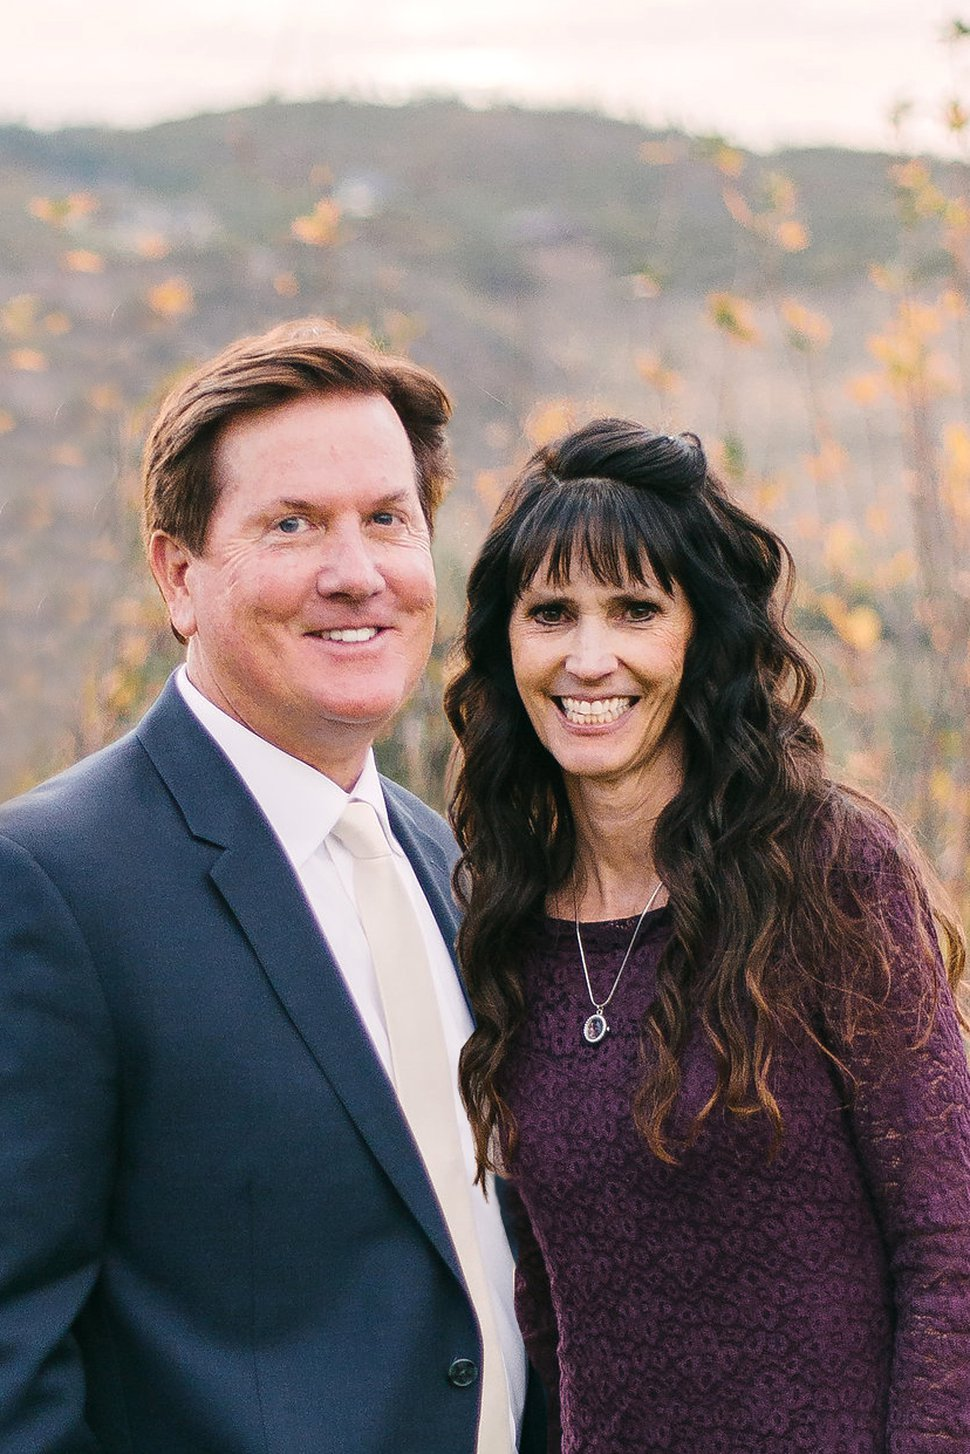 (Photo courtesy of The Church of Jesus Christ of Latter-day Saints) Norman and Wendy Nelson Maxfield. Wendy Maxfield, daughter of church President Russell M. Nelson, died Friday, Jan, 11, 2019, after a battle with cancer.